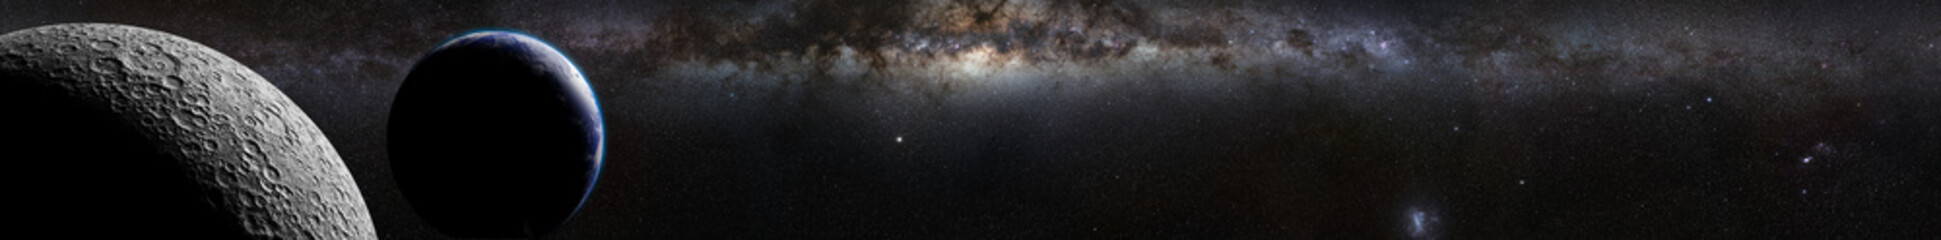 Moon in front of Earth, Sun and the Milky Way galaxy